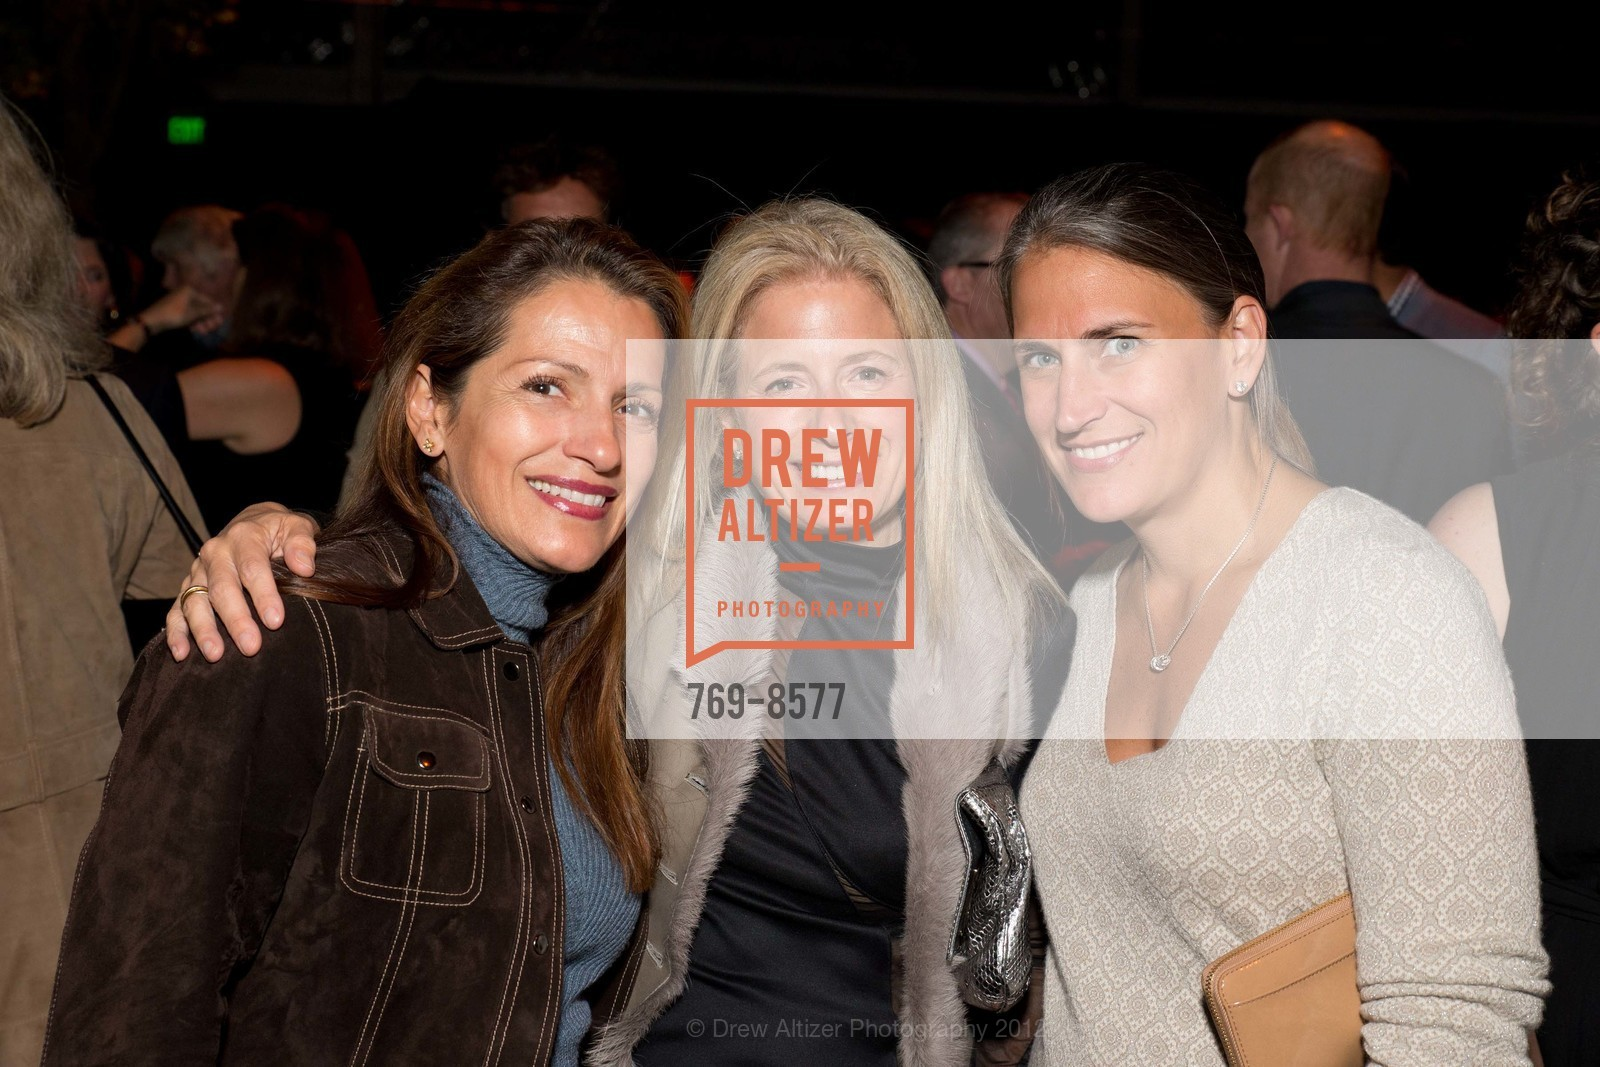 elizabeth cooper with alexandria alpers and amy price https drewaltizer com event 8577 party for the parks at anglers lodge san francisco parks alliance photo 2883032 elizabeth cooper alexandria alpers amy price